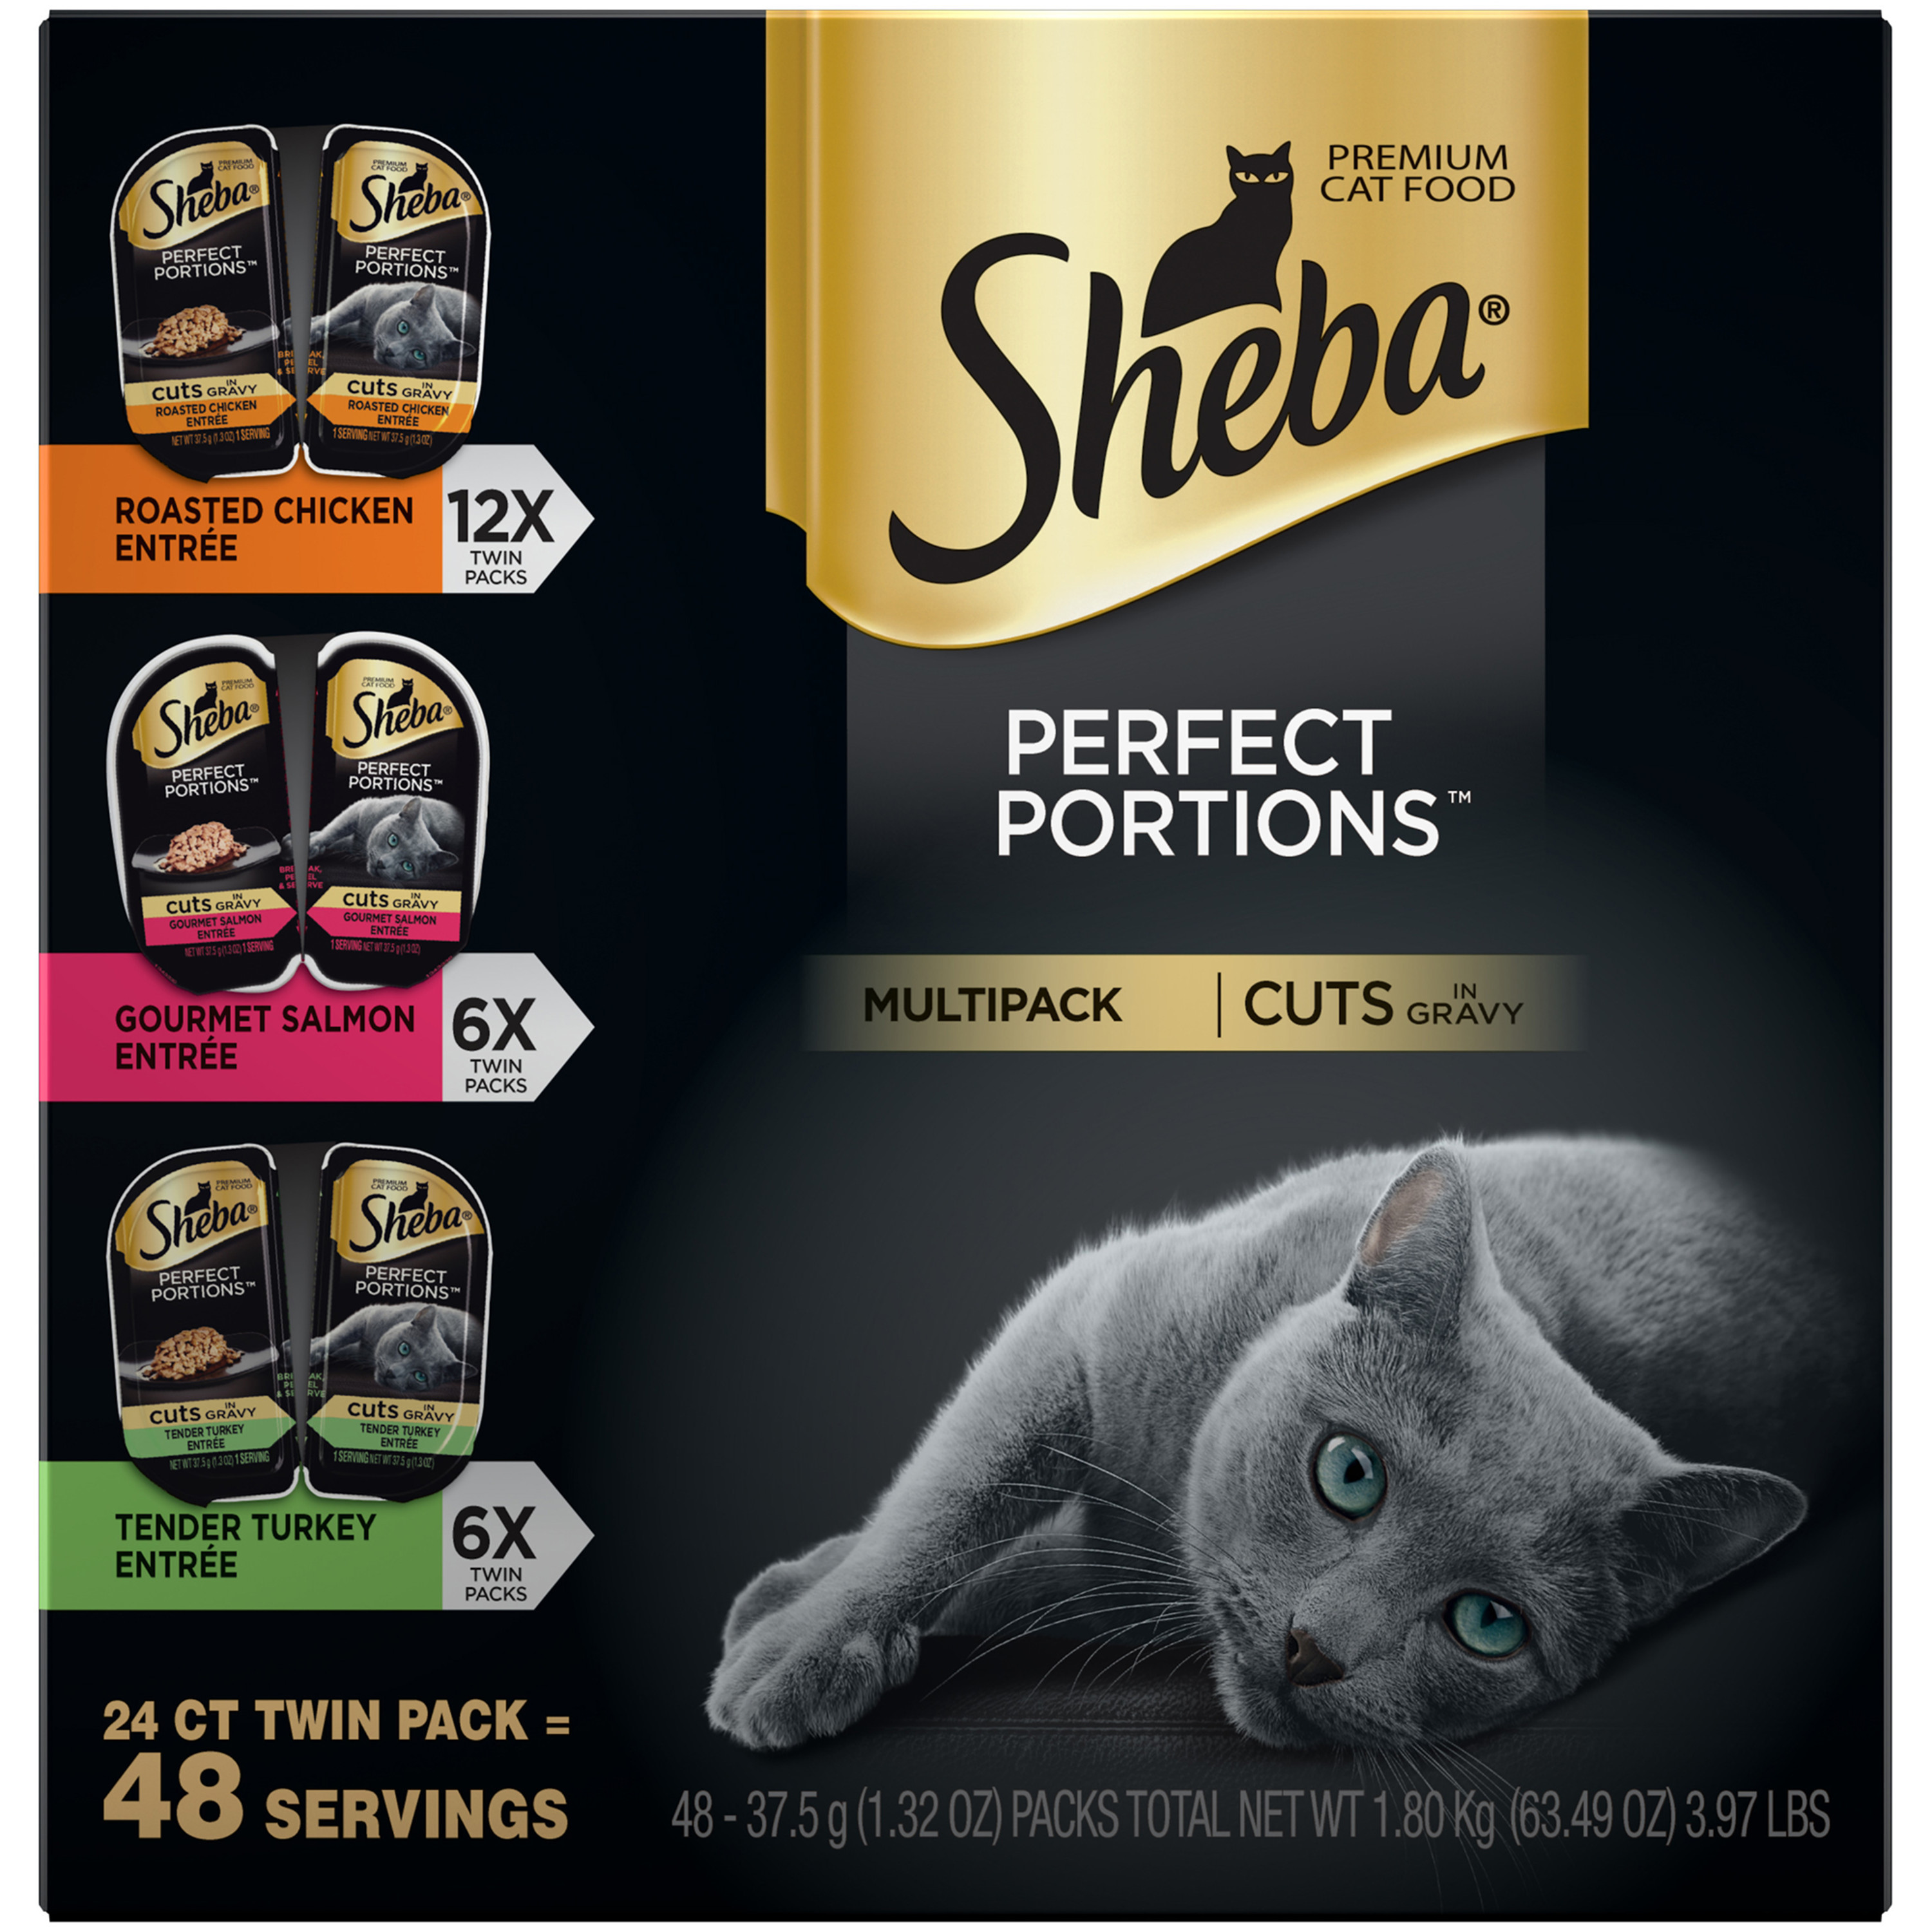 Sheba Perfect Portions Cuts In Gravy Multipack Roasted Chicken, Gourmet Salmon, Tender Turkey Grain Free Wet Cat Food 2.6 Ounces (24 Twin Packs)